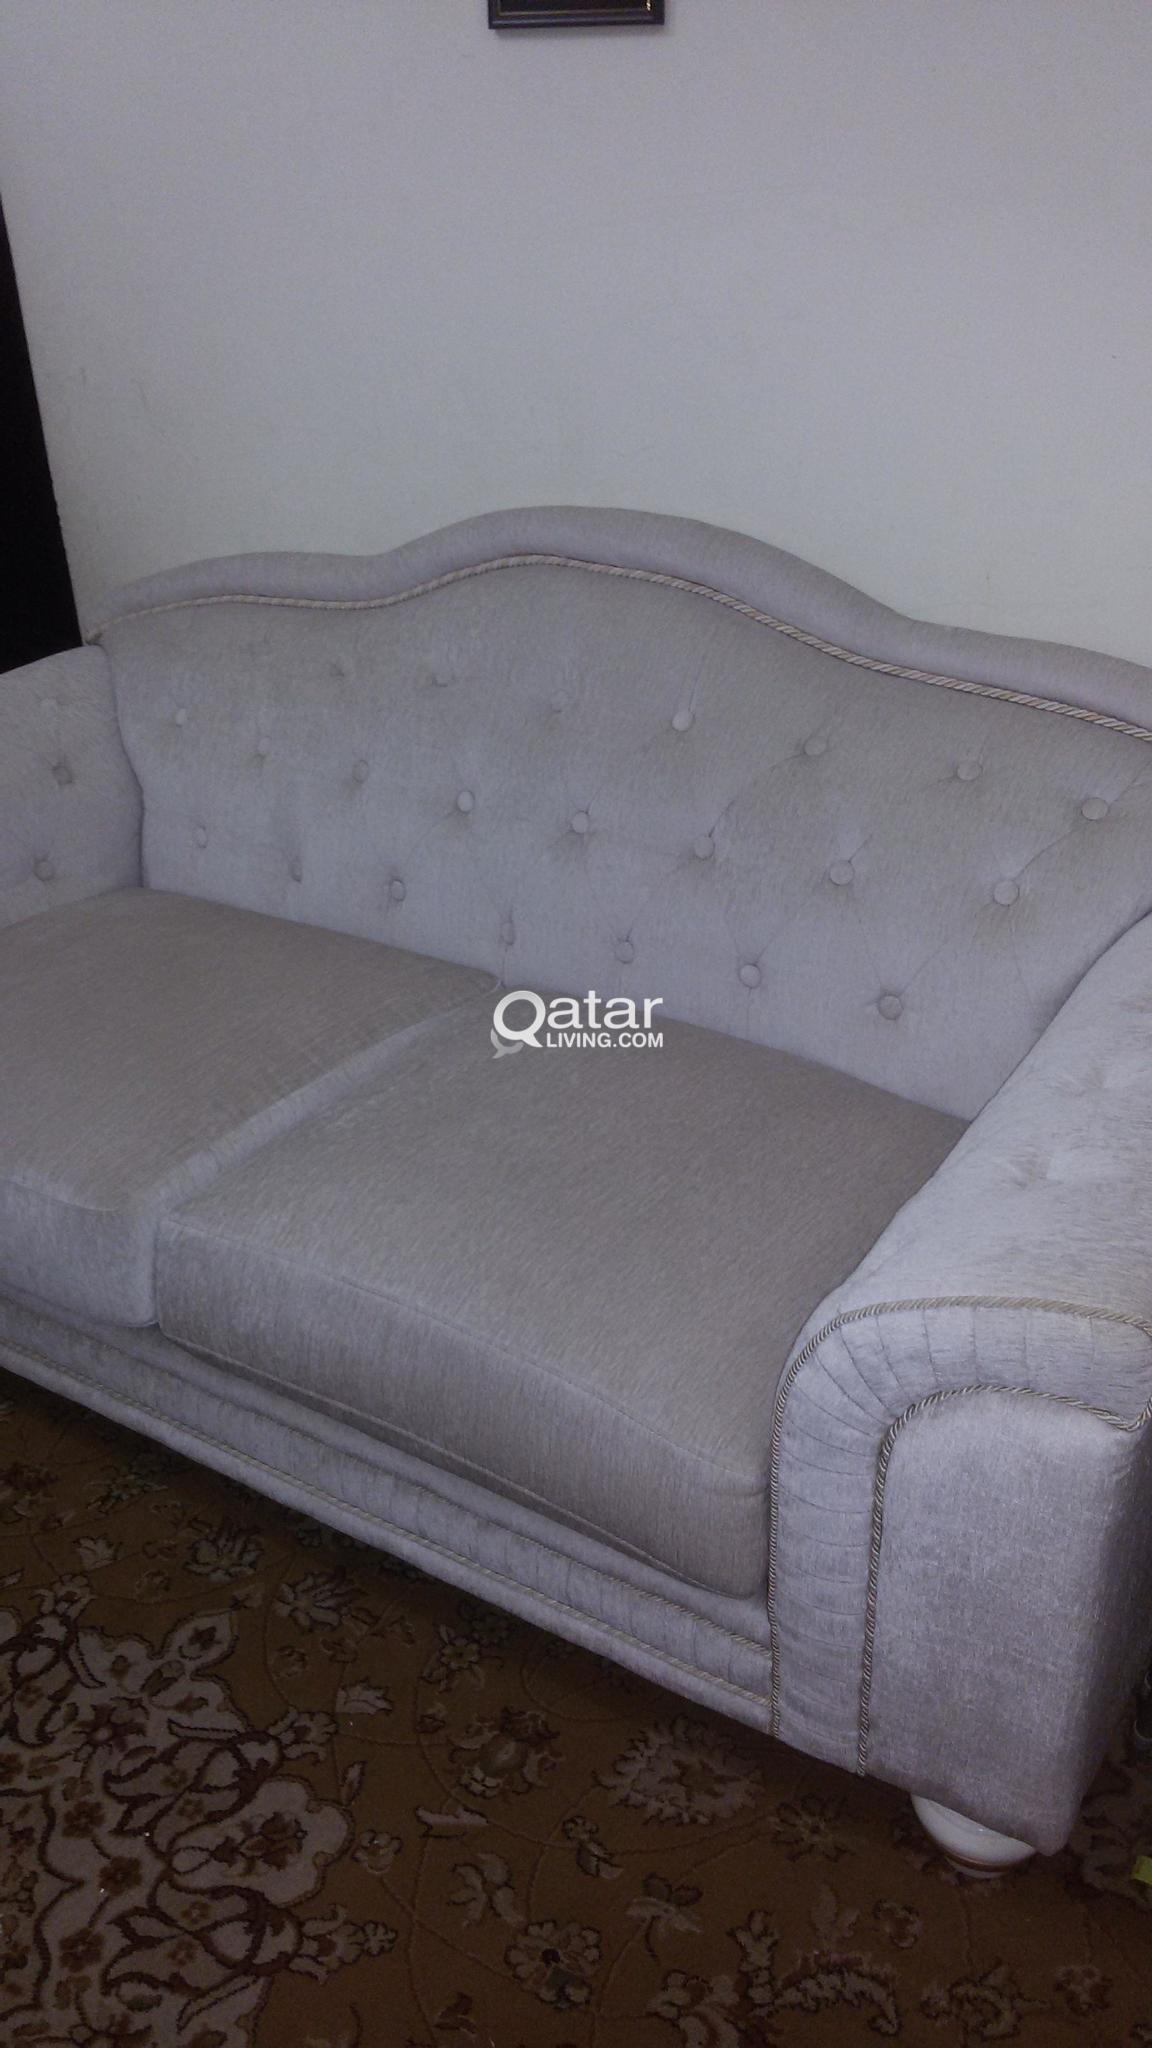 Incredible Homes R Us Home Center Furniture For Sale Qatar Living Download Free Architecture Designs Intelgarnamadebymaigaardcom